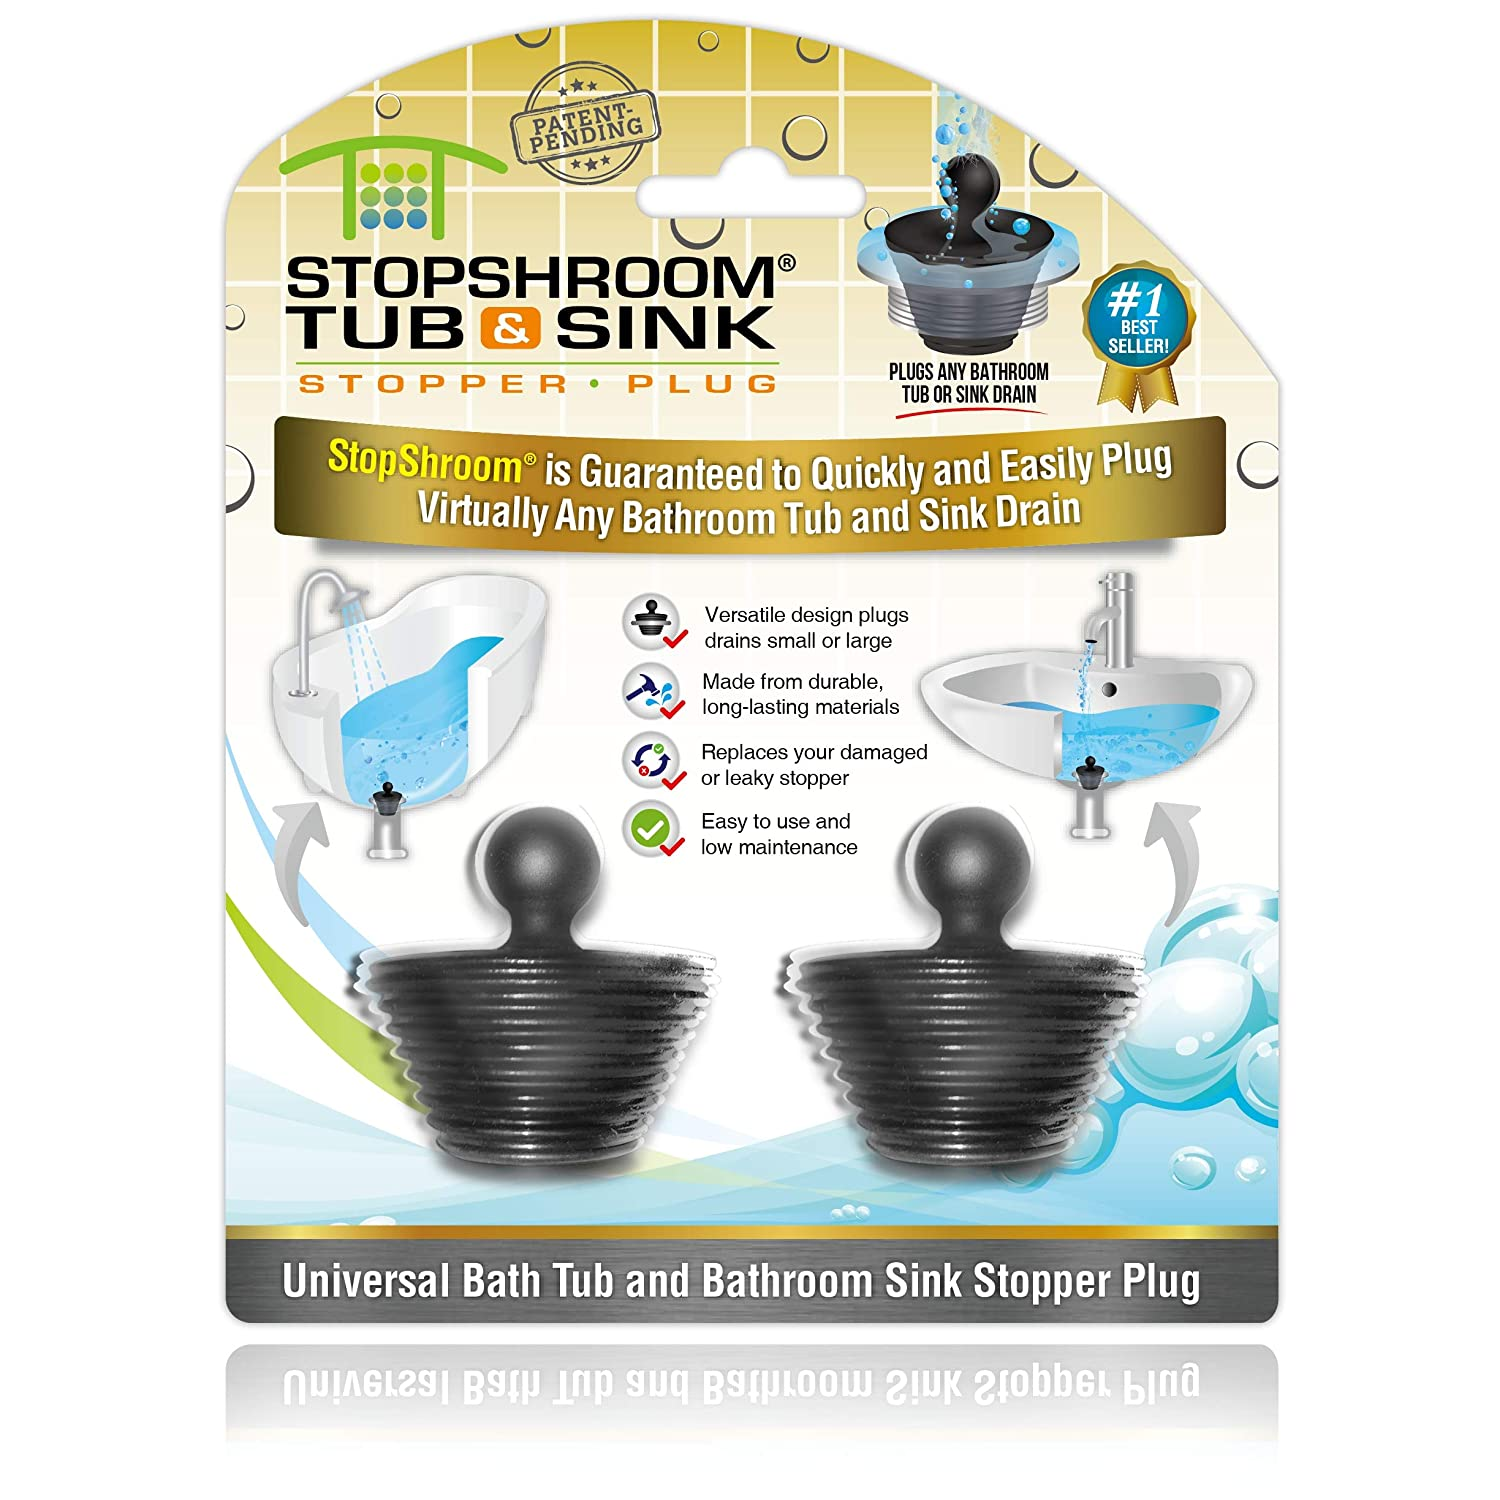 StopShroom Tub Plug 2 Pack Universal Stopper for Bathtub and Bathroom Sink Drains (Black), 2pk